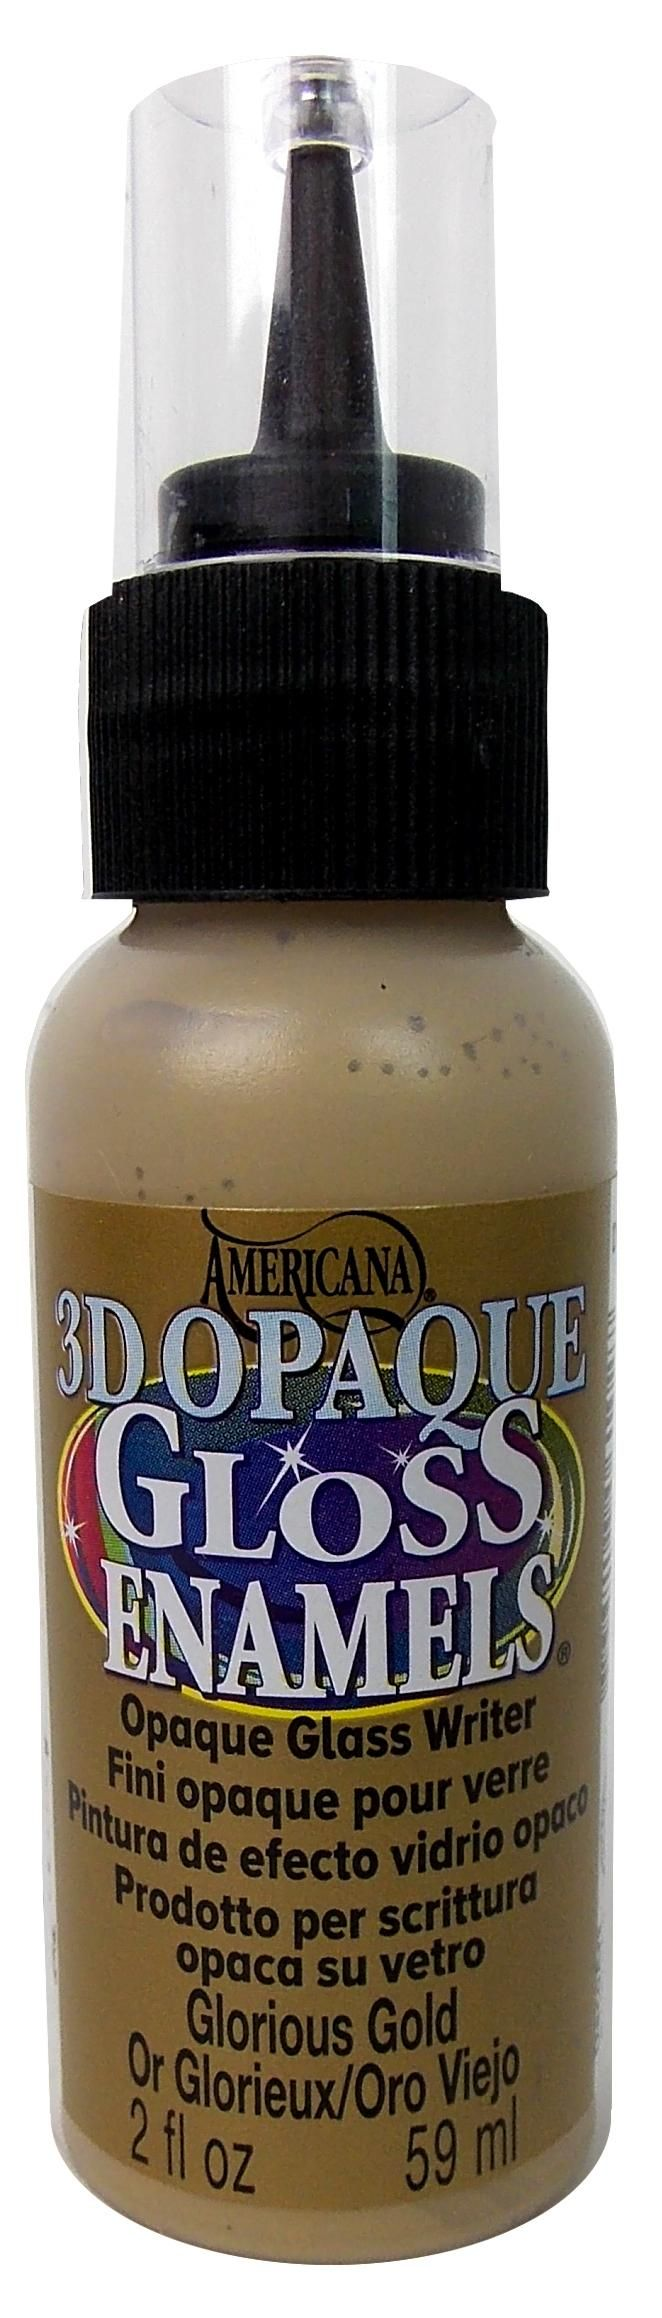 DecoArt Americana Gloss Enamel Paint is a multi-surface paint that adheres to glass, wood, papier mache, plaster, resin, ceramics, and more. Decorate ordinary glass items, flea market finds and more for your home. Painted glassware may be baked for a dishwasher-safe finish. Easy-to-squeeze bottle with writer-tip. Opaque, dimensional paint. 2 oz. #71 Opaque Writer 3D Glorious Gold.